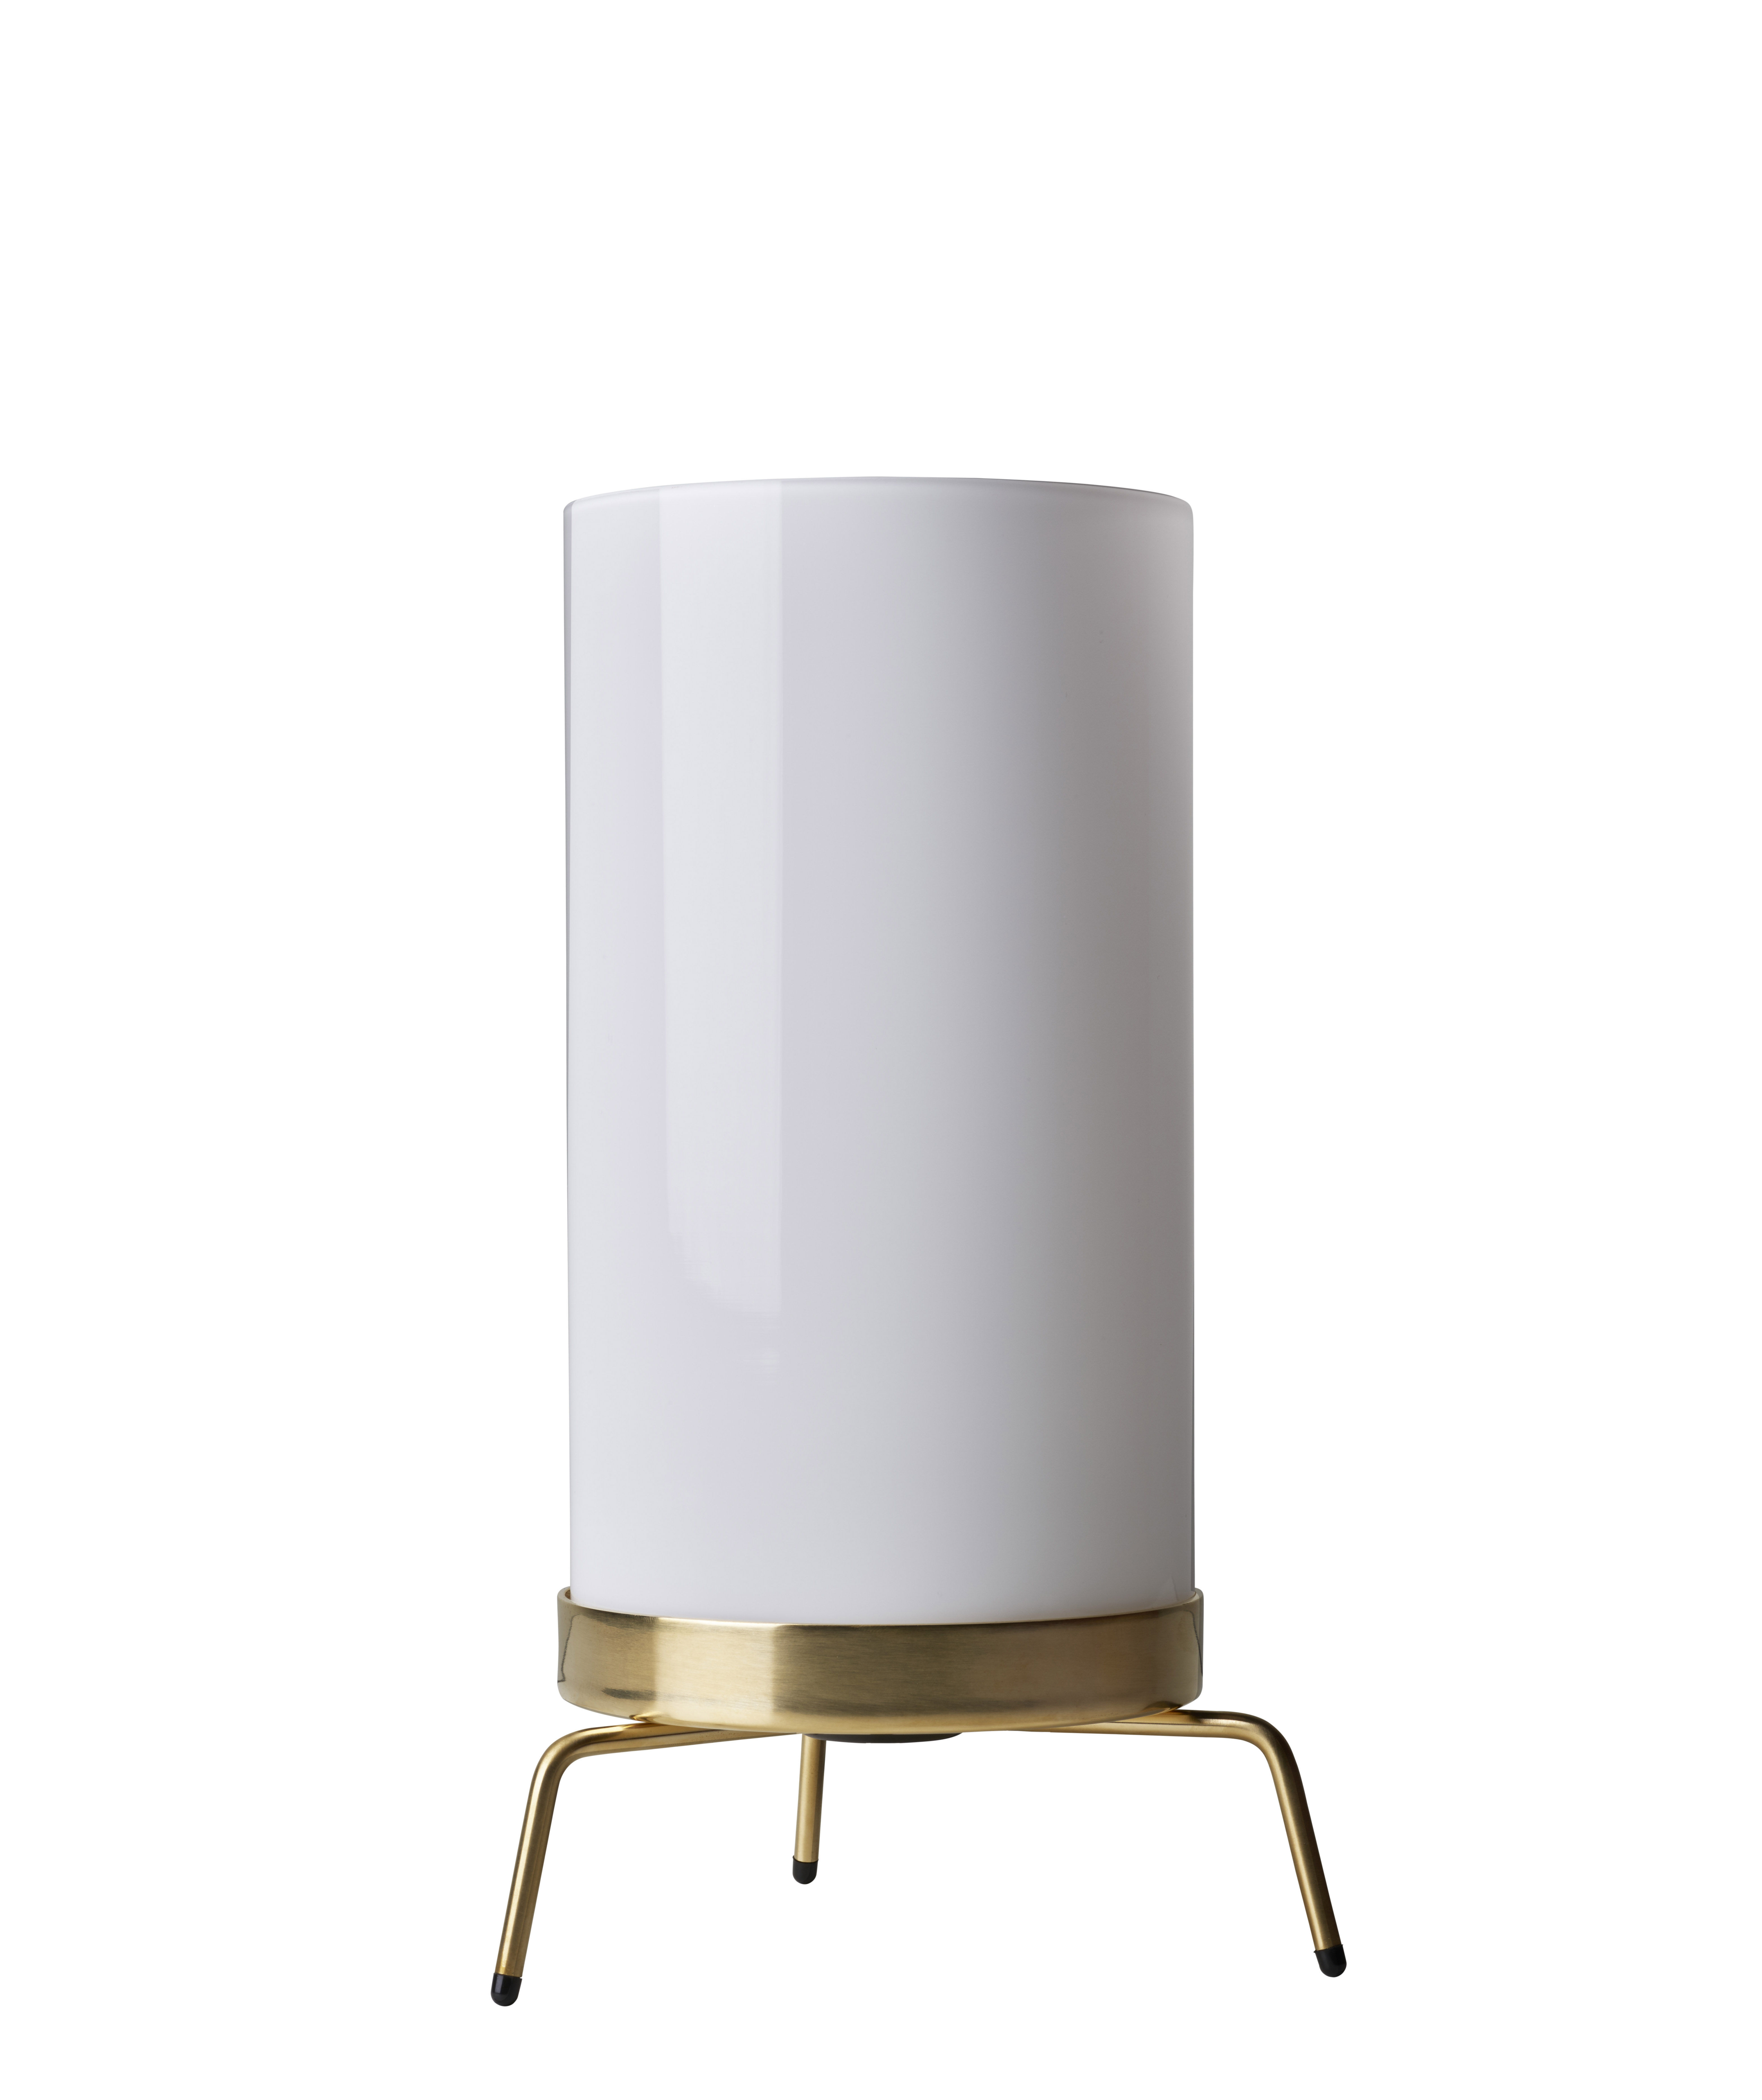 Lighting - Table Lamps - PM-02 Lamp - / 50s reissue by Fritz Hansen - Polished brass / White - Hand-blown frosted glass, Polished brass